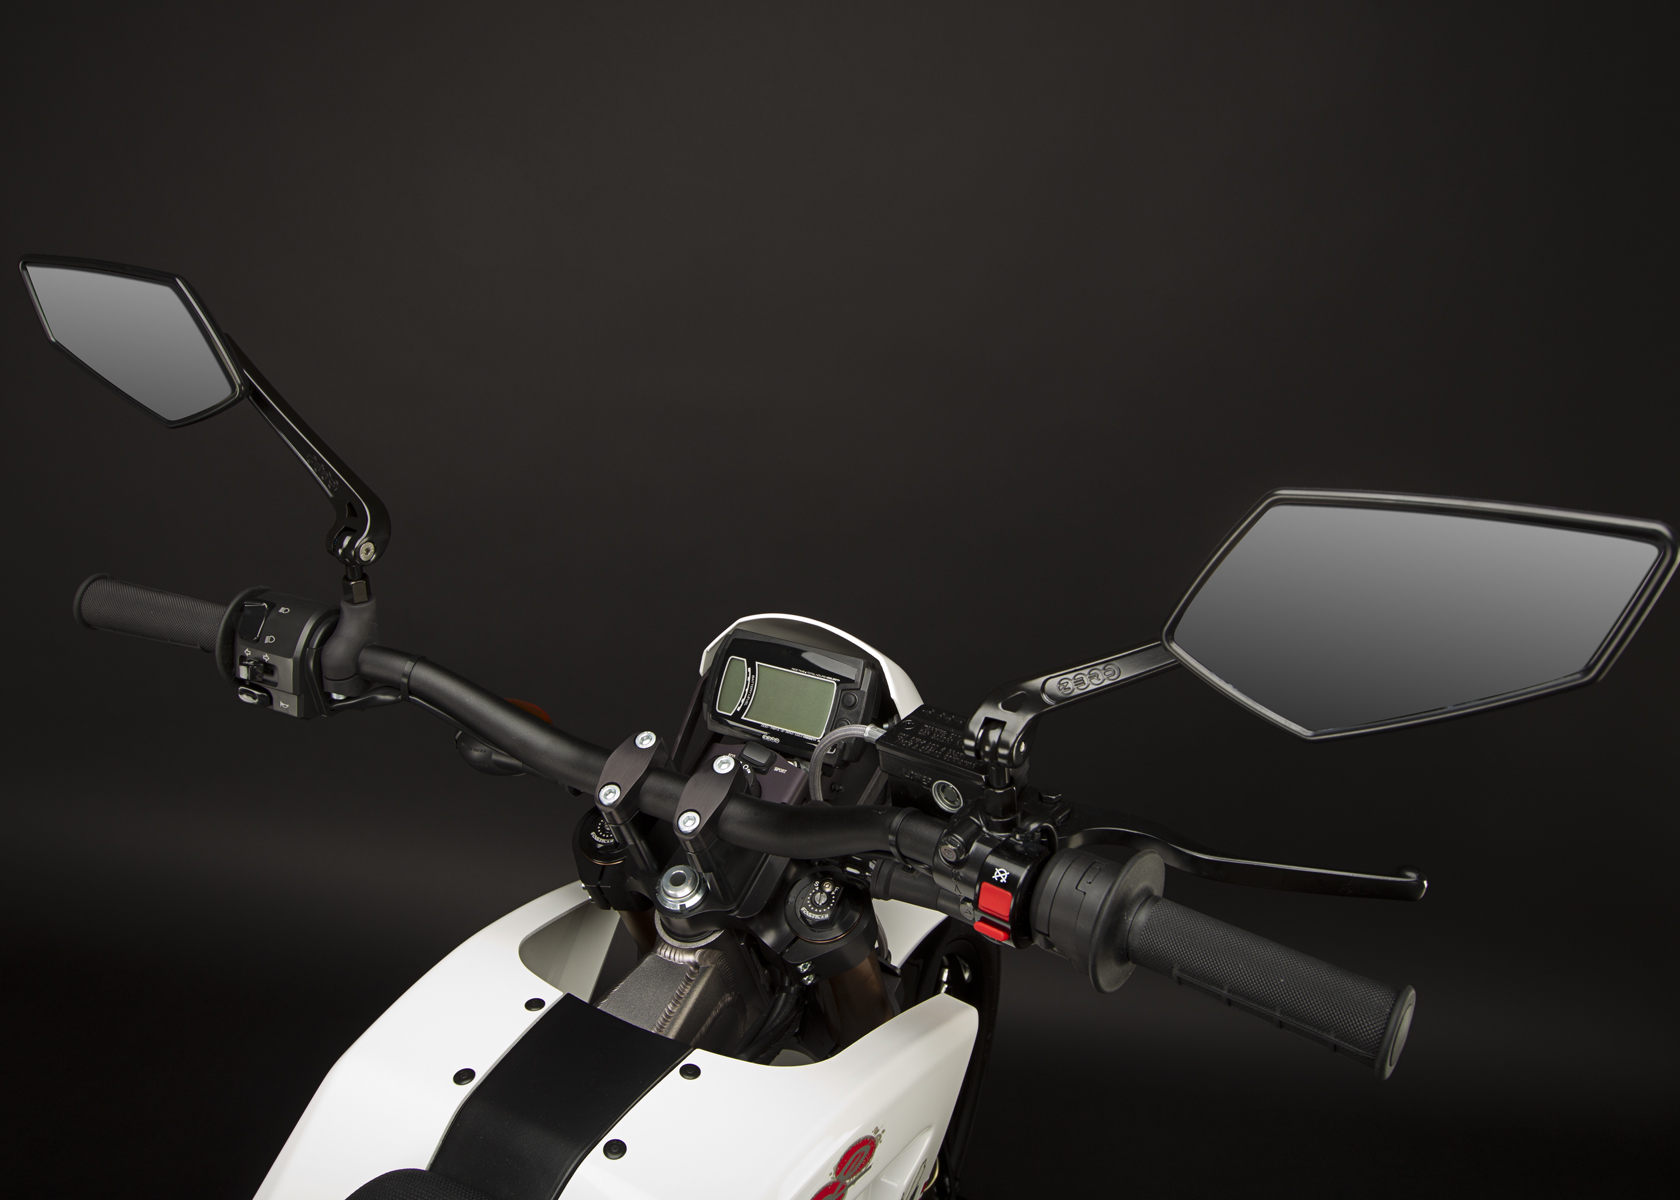 2011 Zero XU Electric Motorcycle: Mirrors and Controls